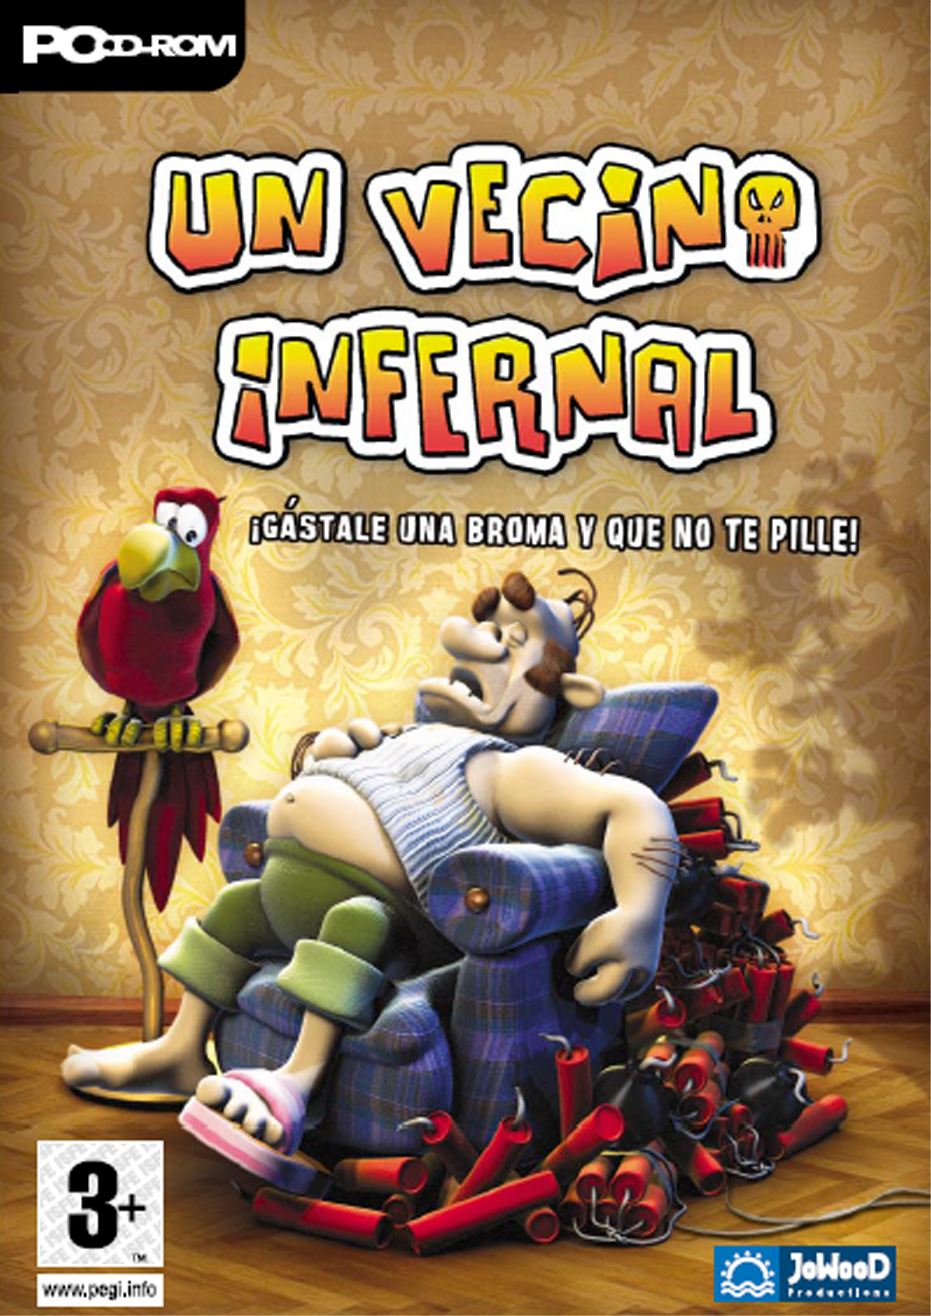 descargar un vecino infernal 2 gratis